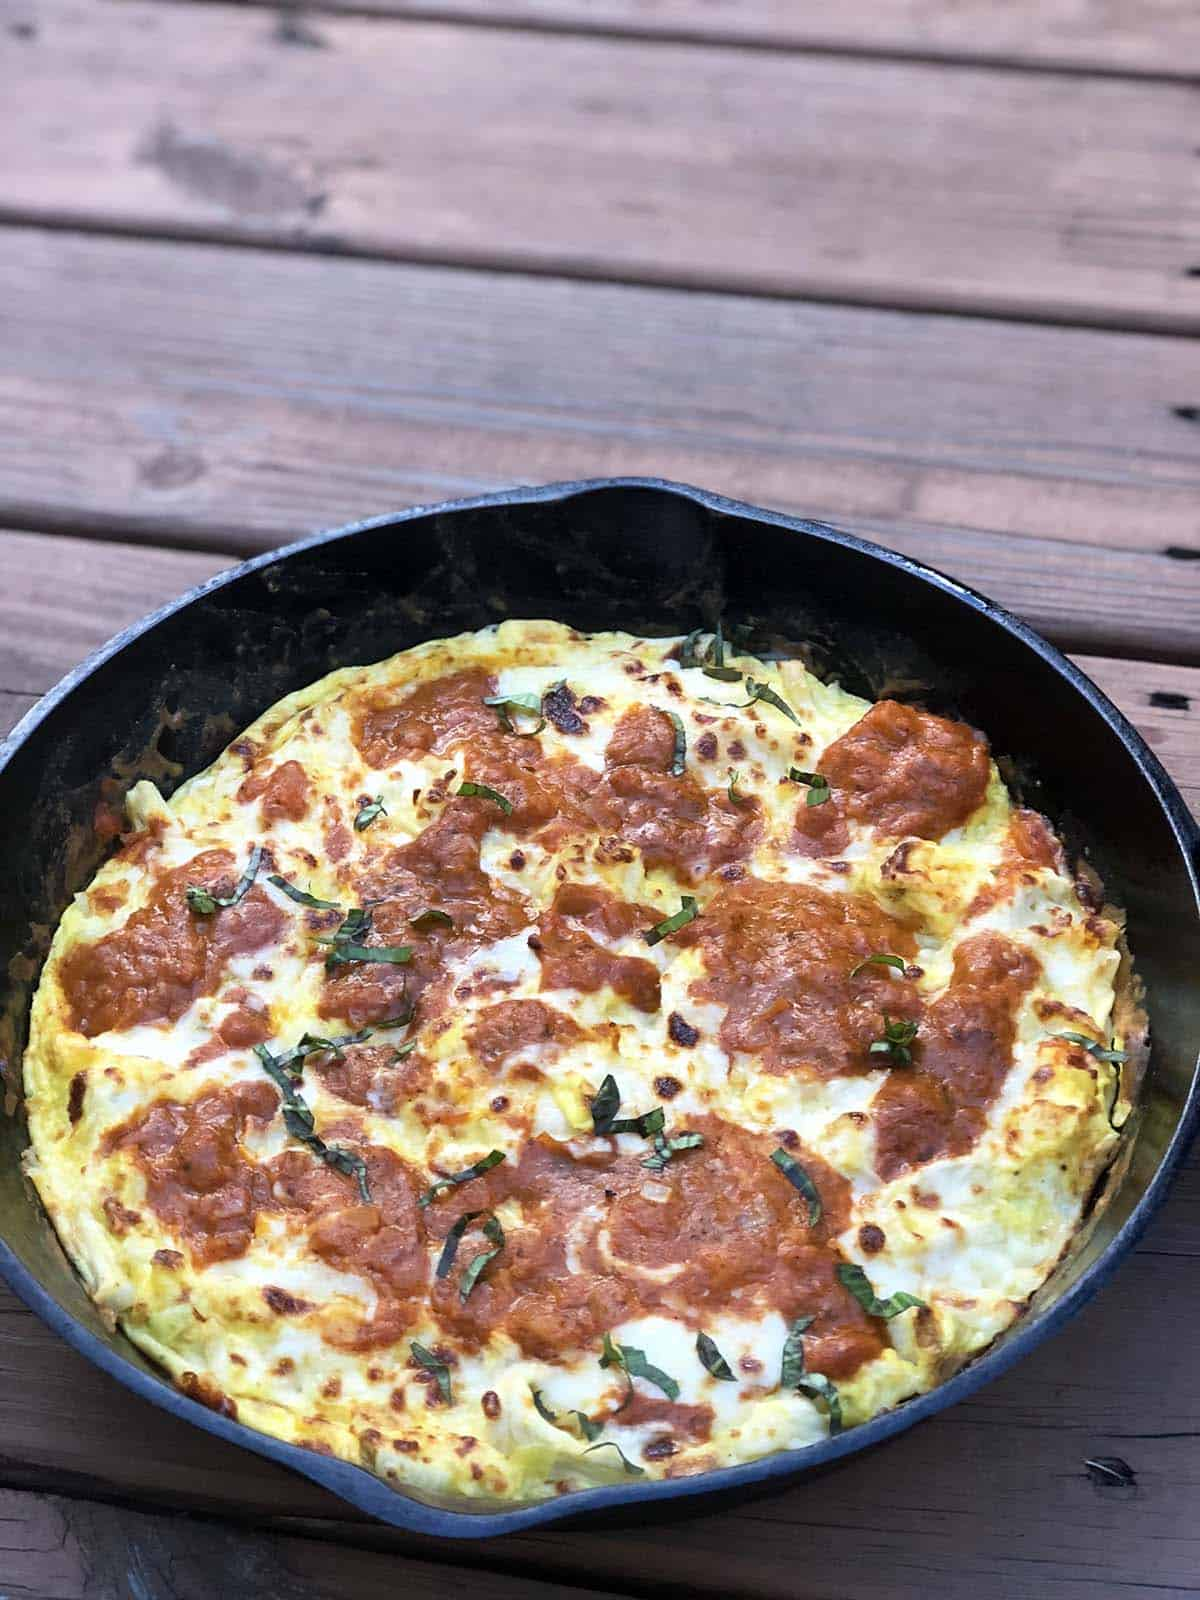 Pizza frittata in cast iron skillet